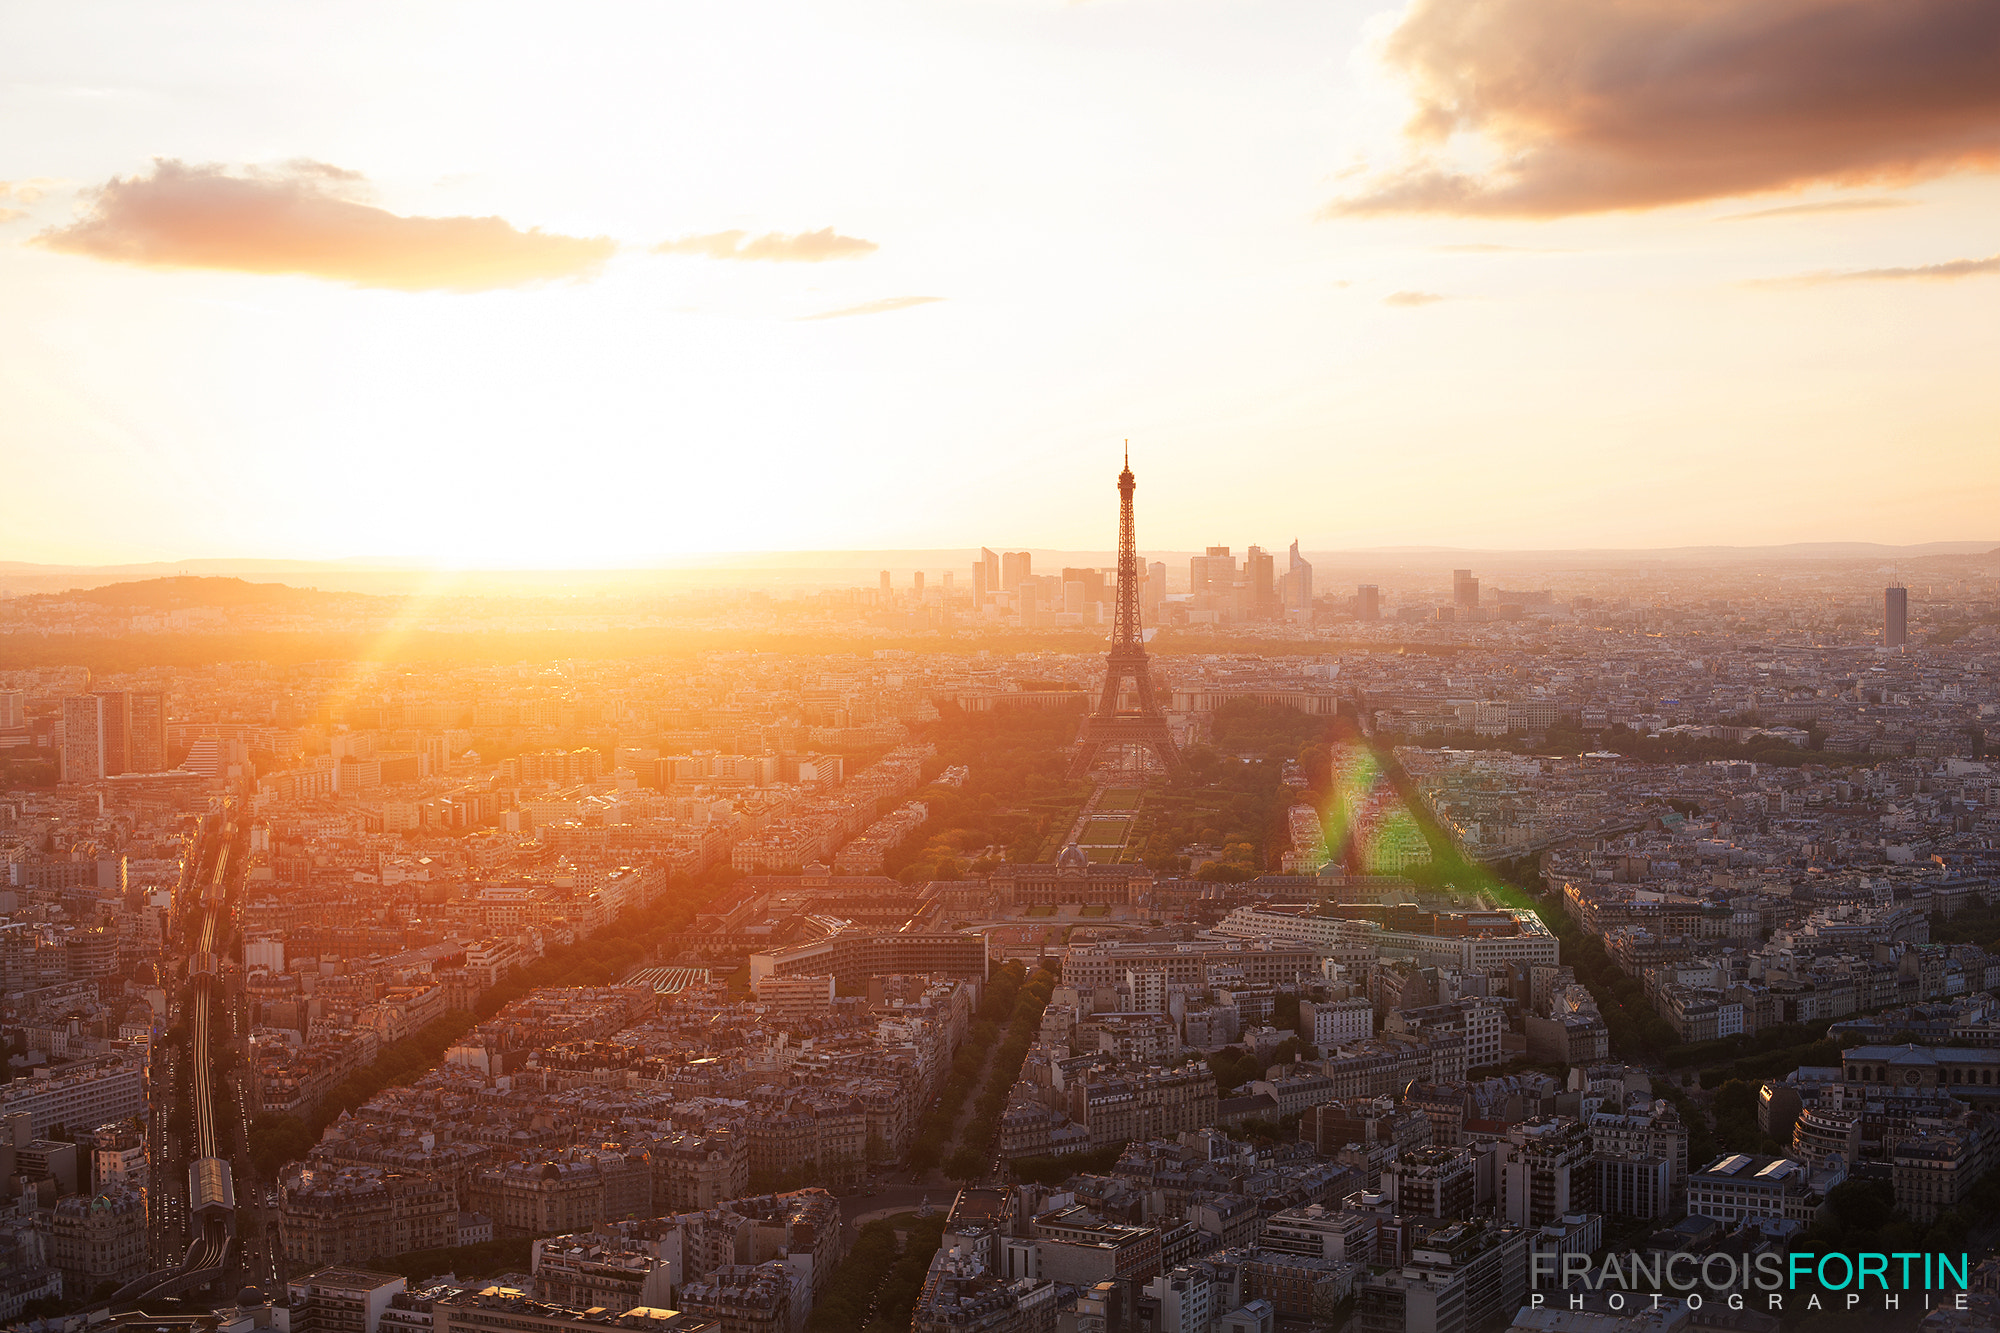 Photograph Paris at sunset by Francois Fortin on 500px